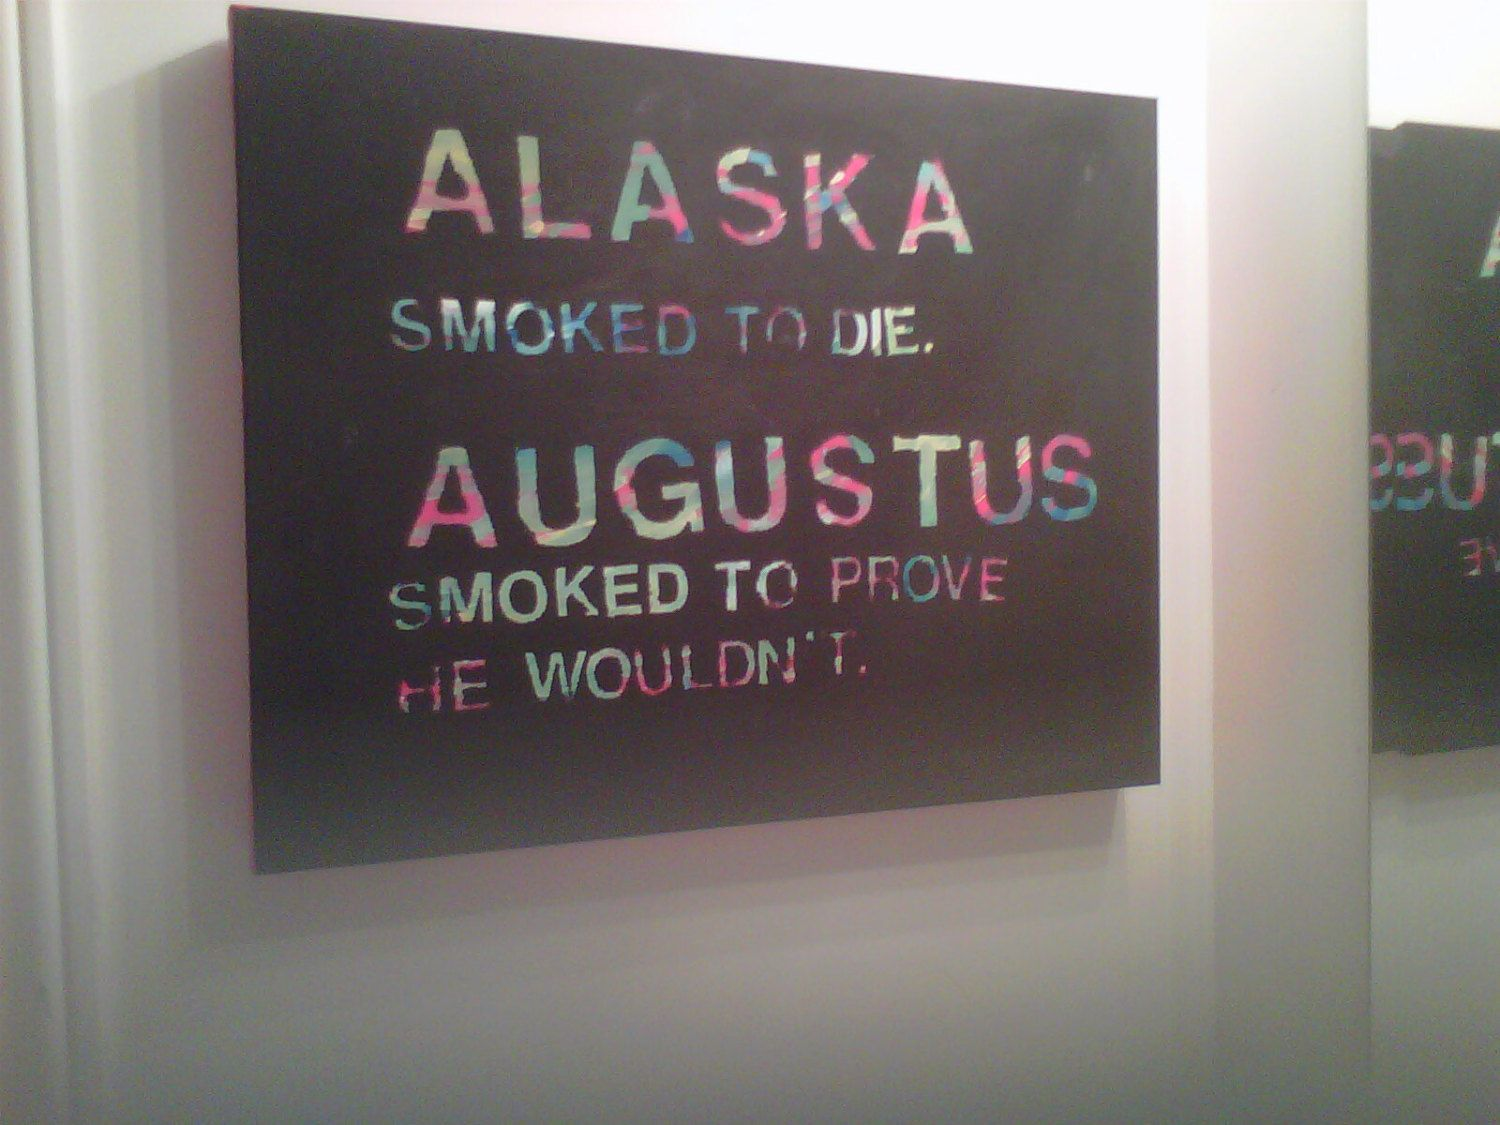 Alaska Quotes Looking For Alaska: Best 25+ Looking For Alaska Ideas On Pinterest